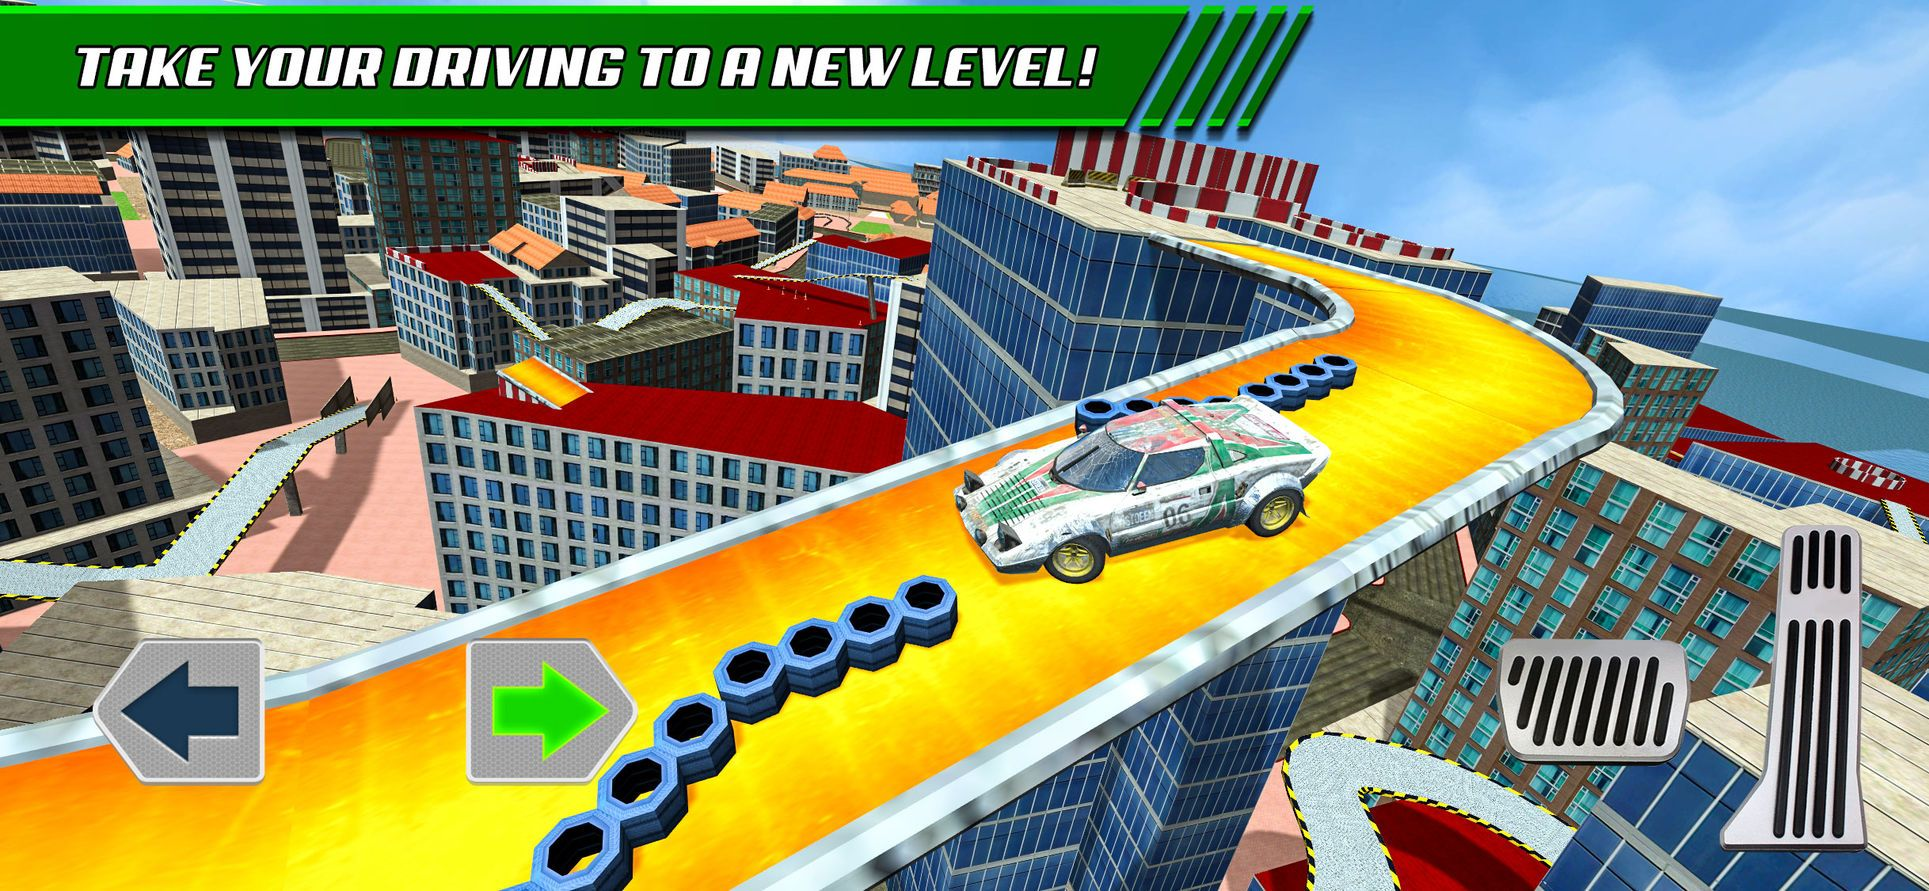 Roof Jumping Stunt Driver Sim Games Play Racing Ios Stunts Sims Roof